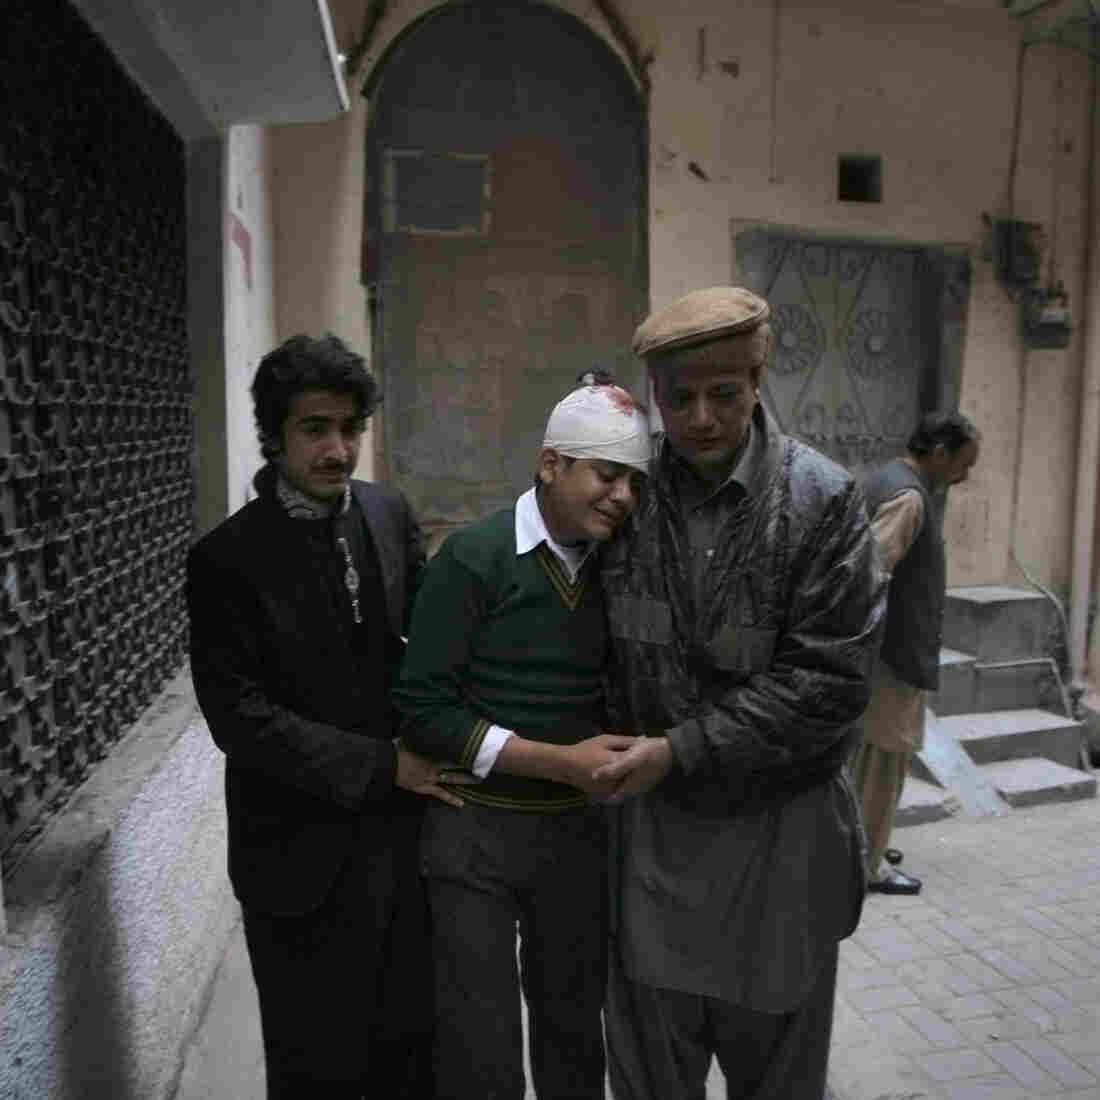 The uncle and cousin of injured student Mohammad Baqair (center) comfort him as he mourns the death of his mother, who was a teacher at the school that was attacked.